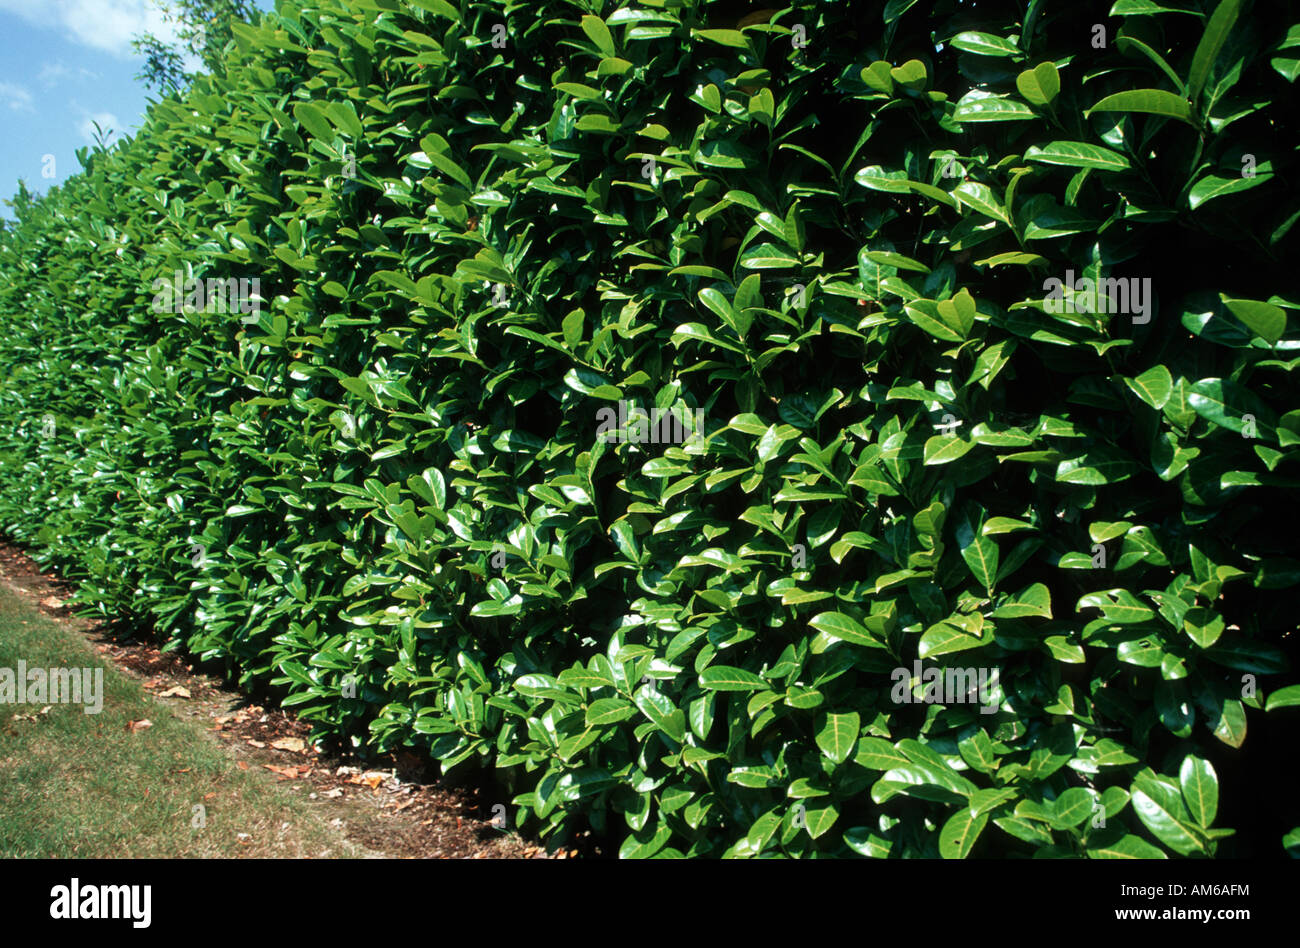 cherry laurel hedge prunus laurocerasus stock photo. Black Bedroom Furniture Sets. Home Design Ideas